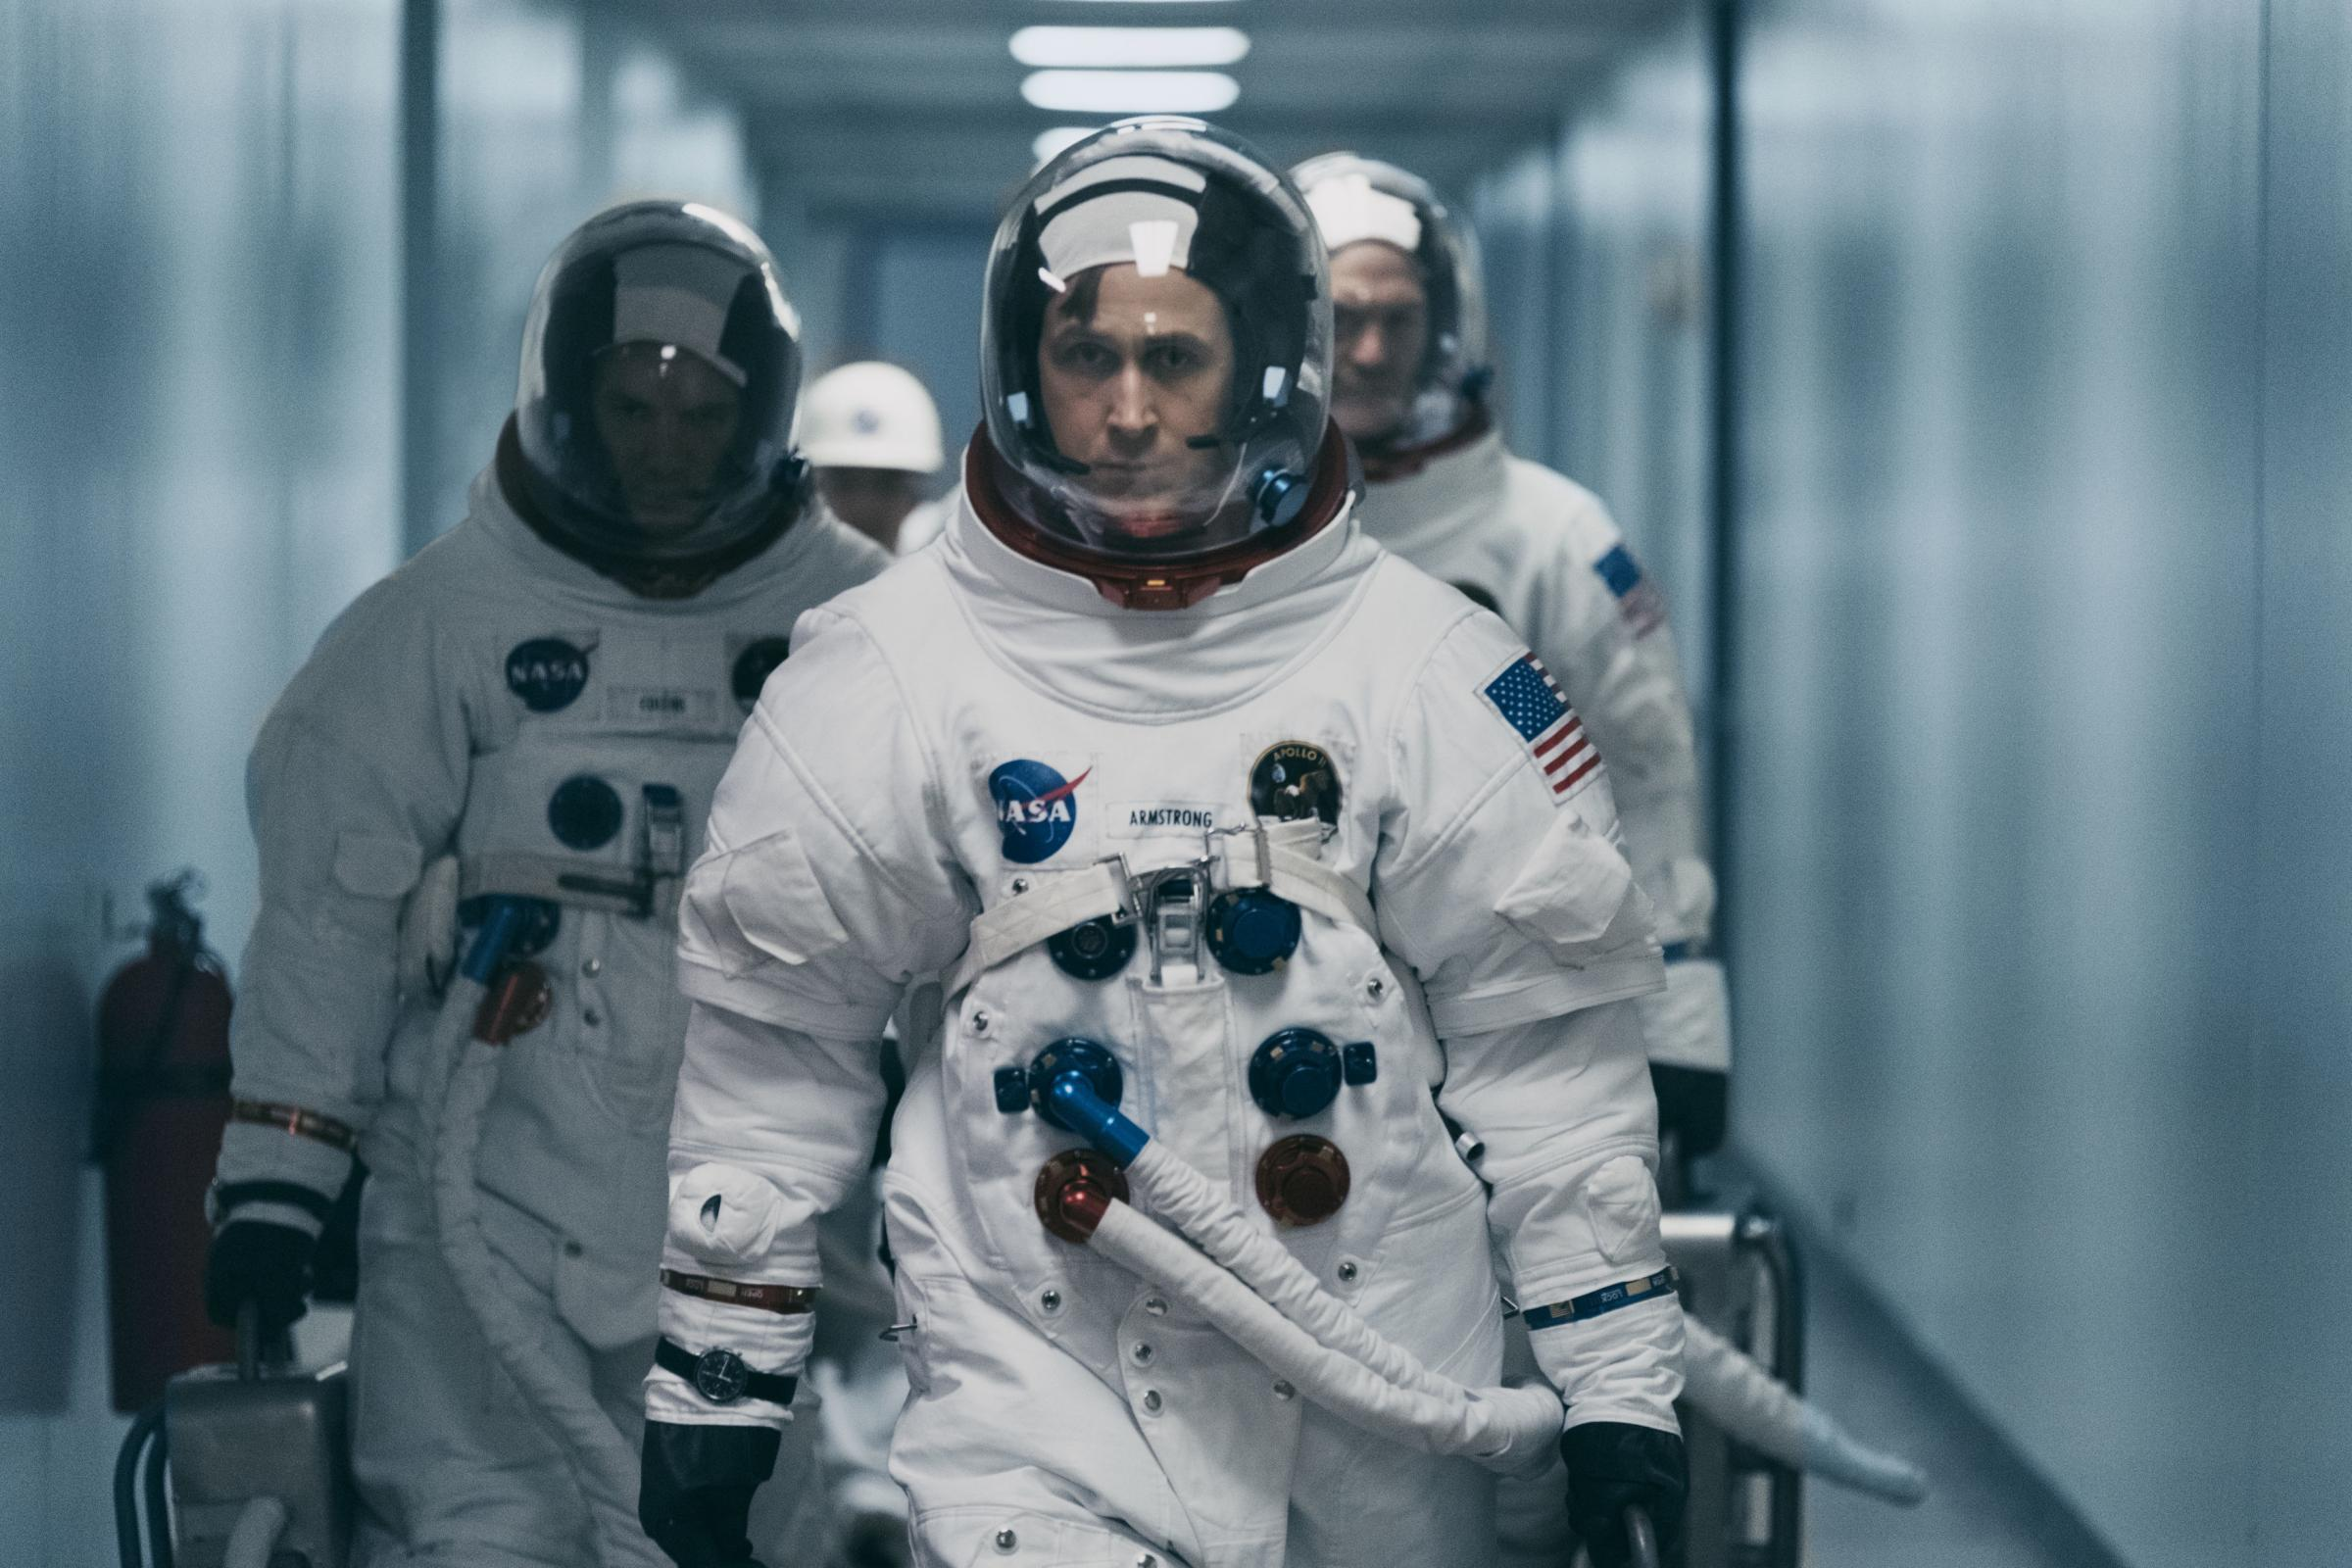 Lukas Haas as Michael Collins, Ryan Gosling as Neil Armstrong and Corey Stoll as Buzz Aldrin